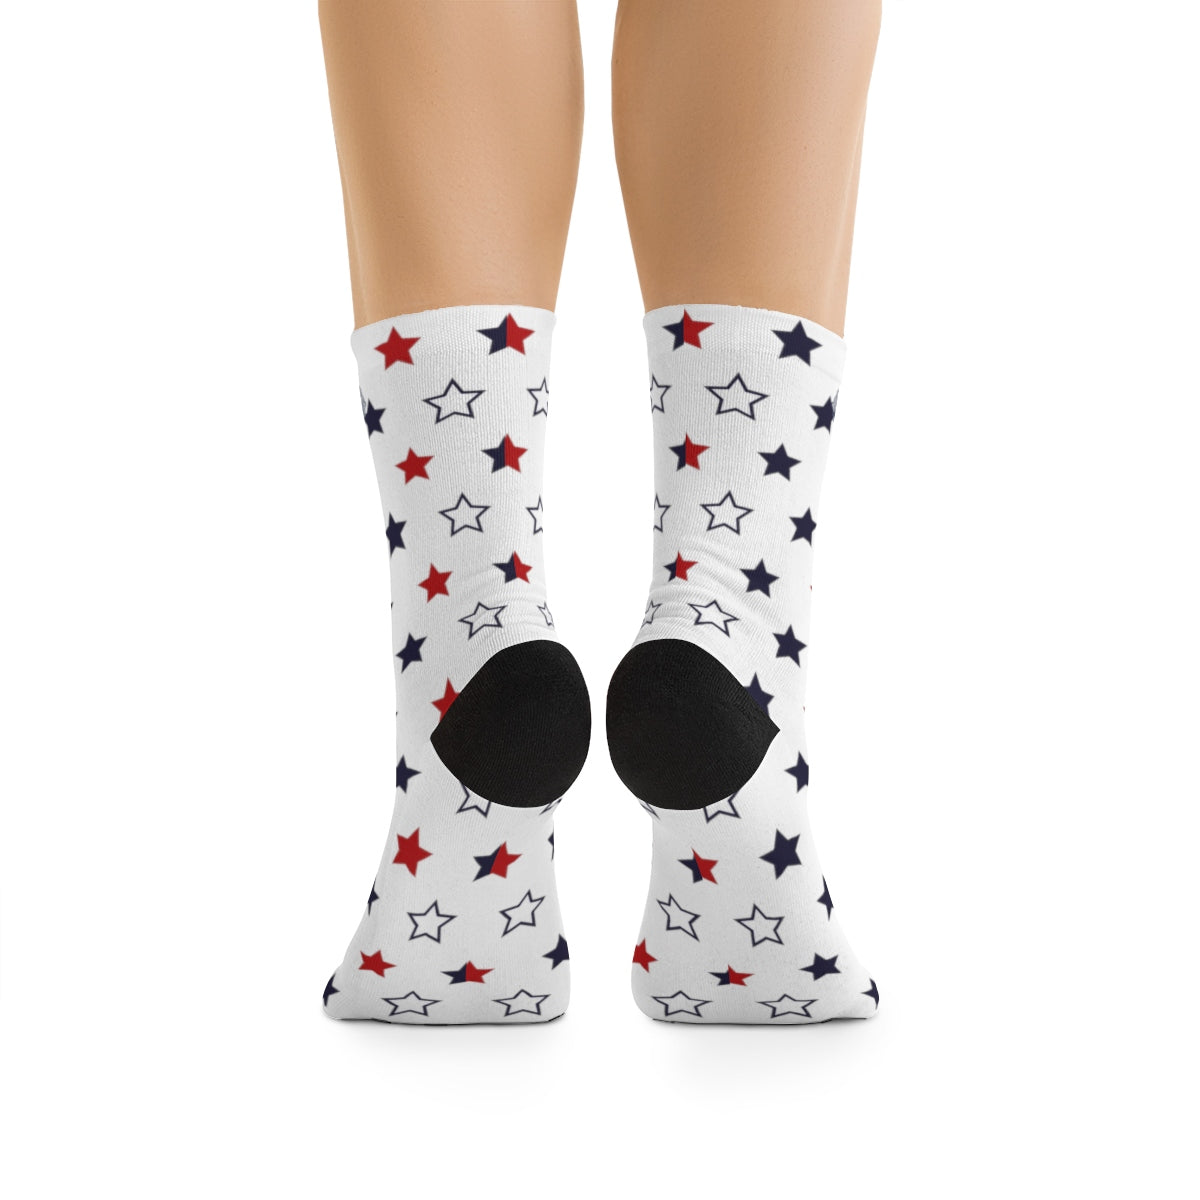 D*L*Y*S*I Red, White & Blue Star Socks